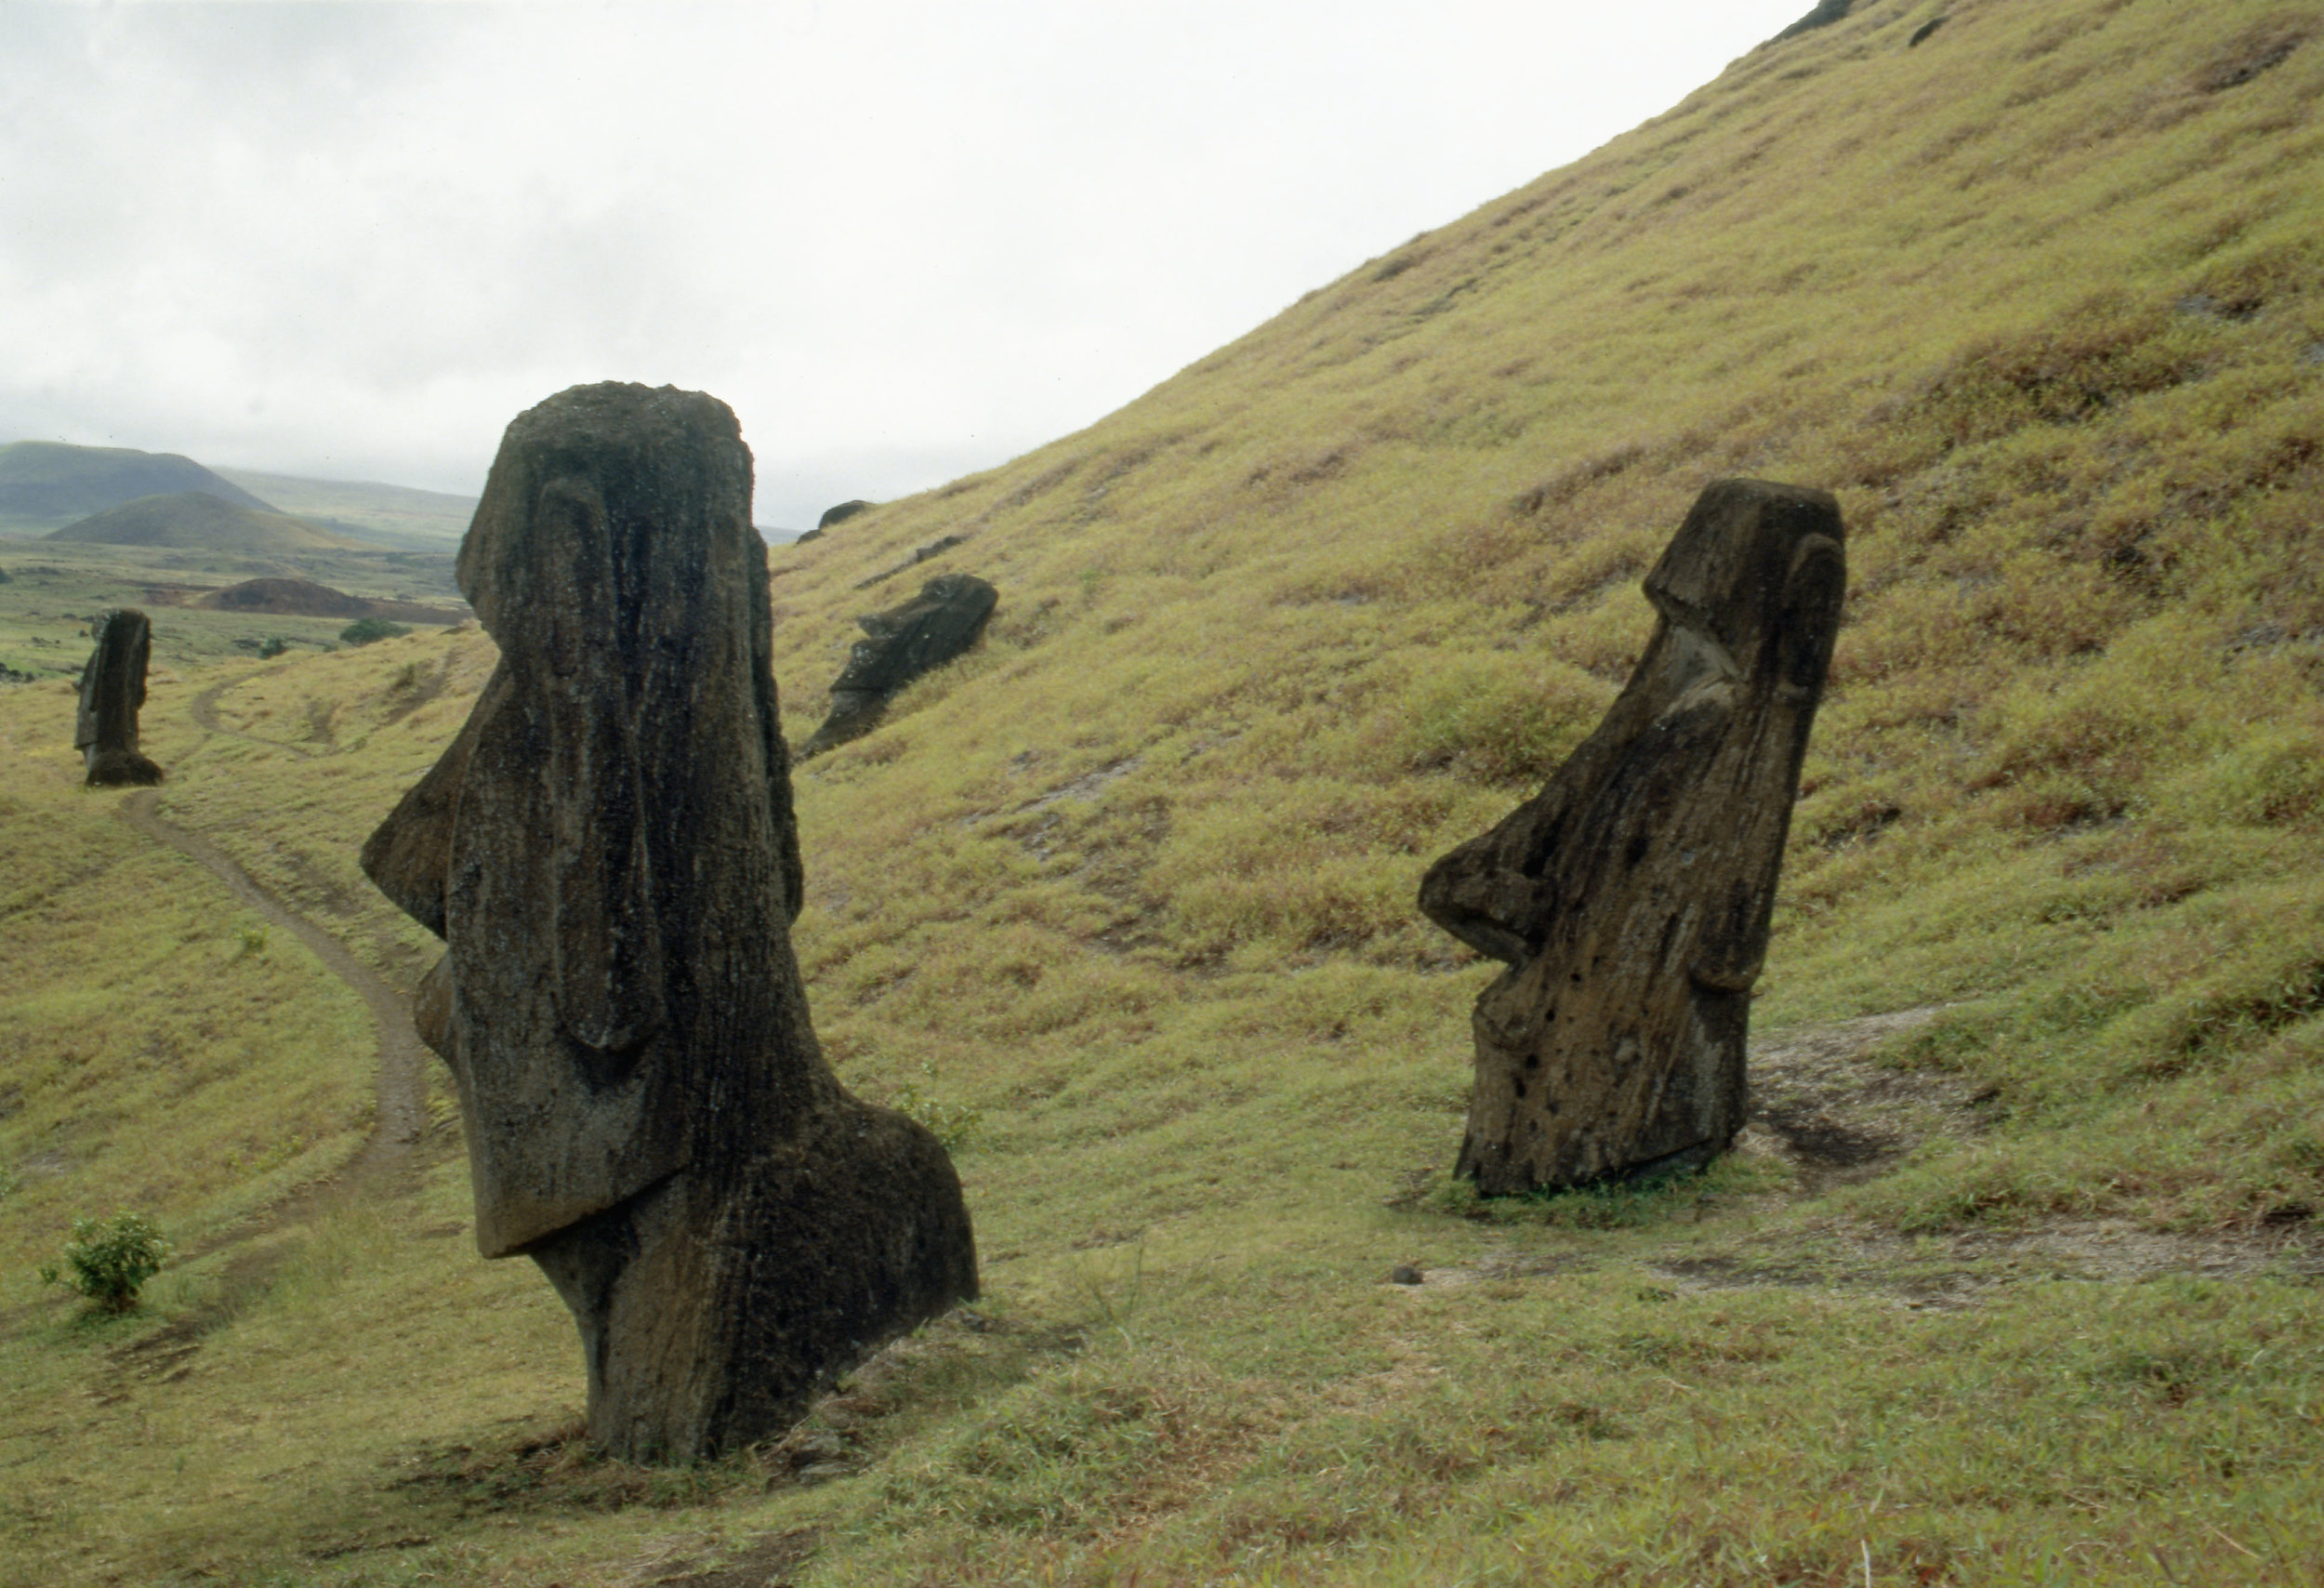 Moai statues, buried up to their necks by soil creep, on the slopes of the volcanic quarry Rano Raraku. Country of Origin: Easter Island. Place of Origin: Easter Island. Credit Line: N.J Saunders / Werner Forman Archive.